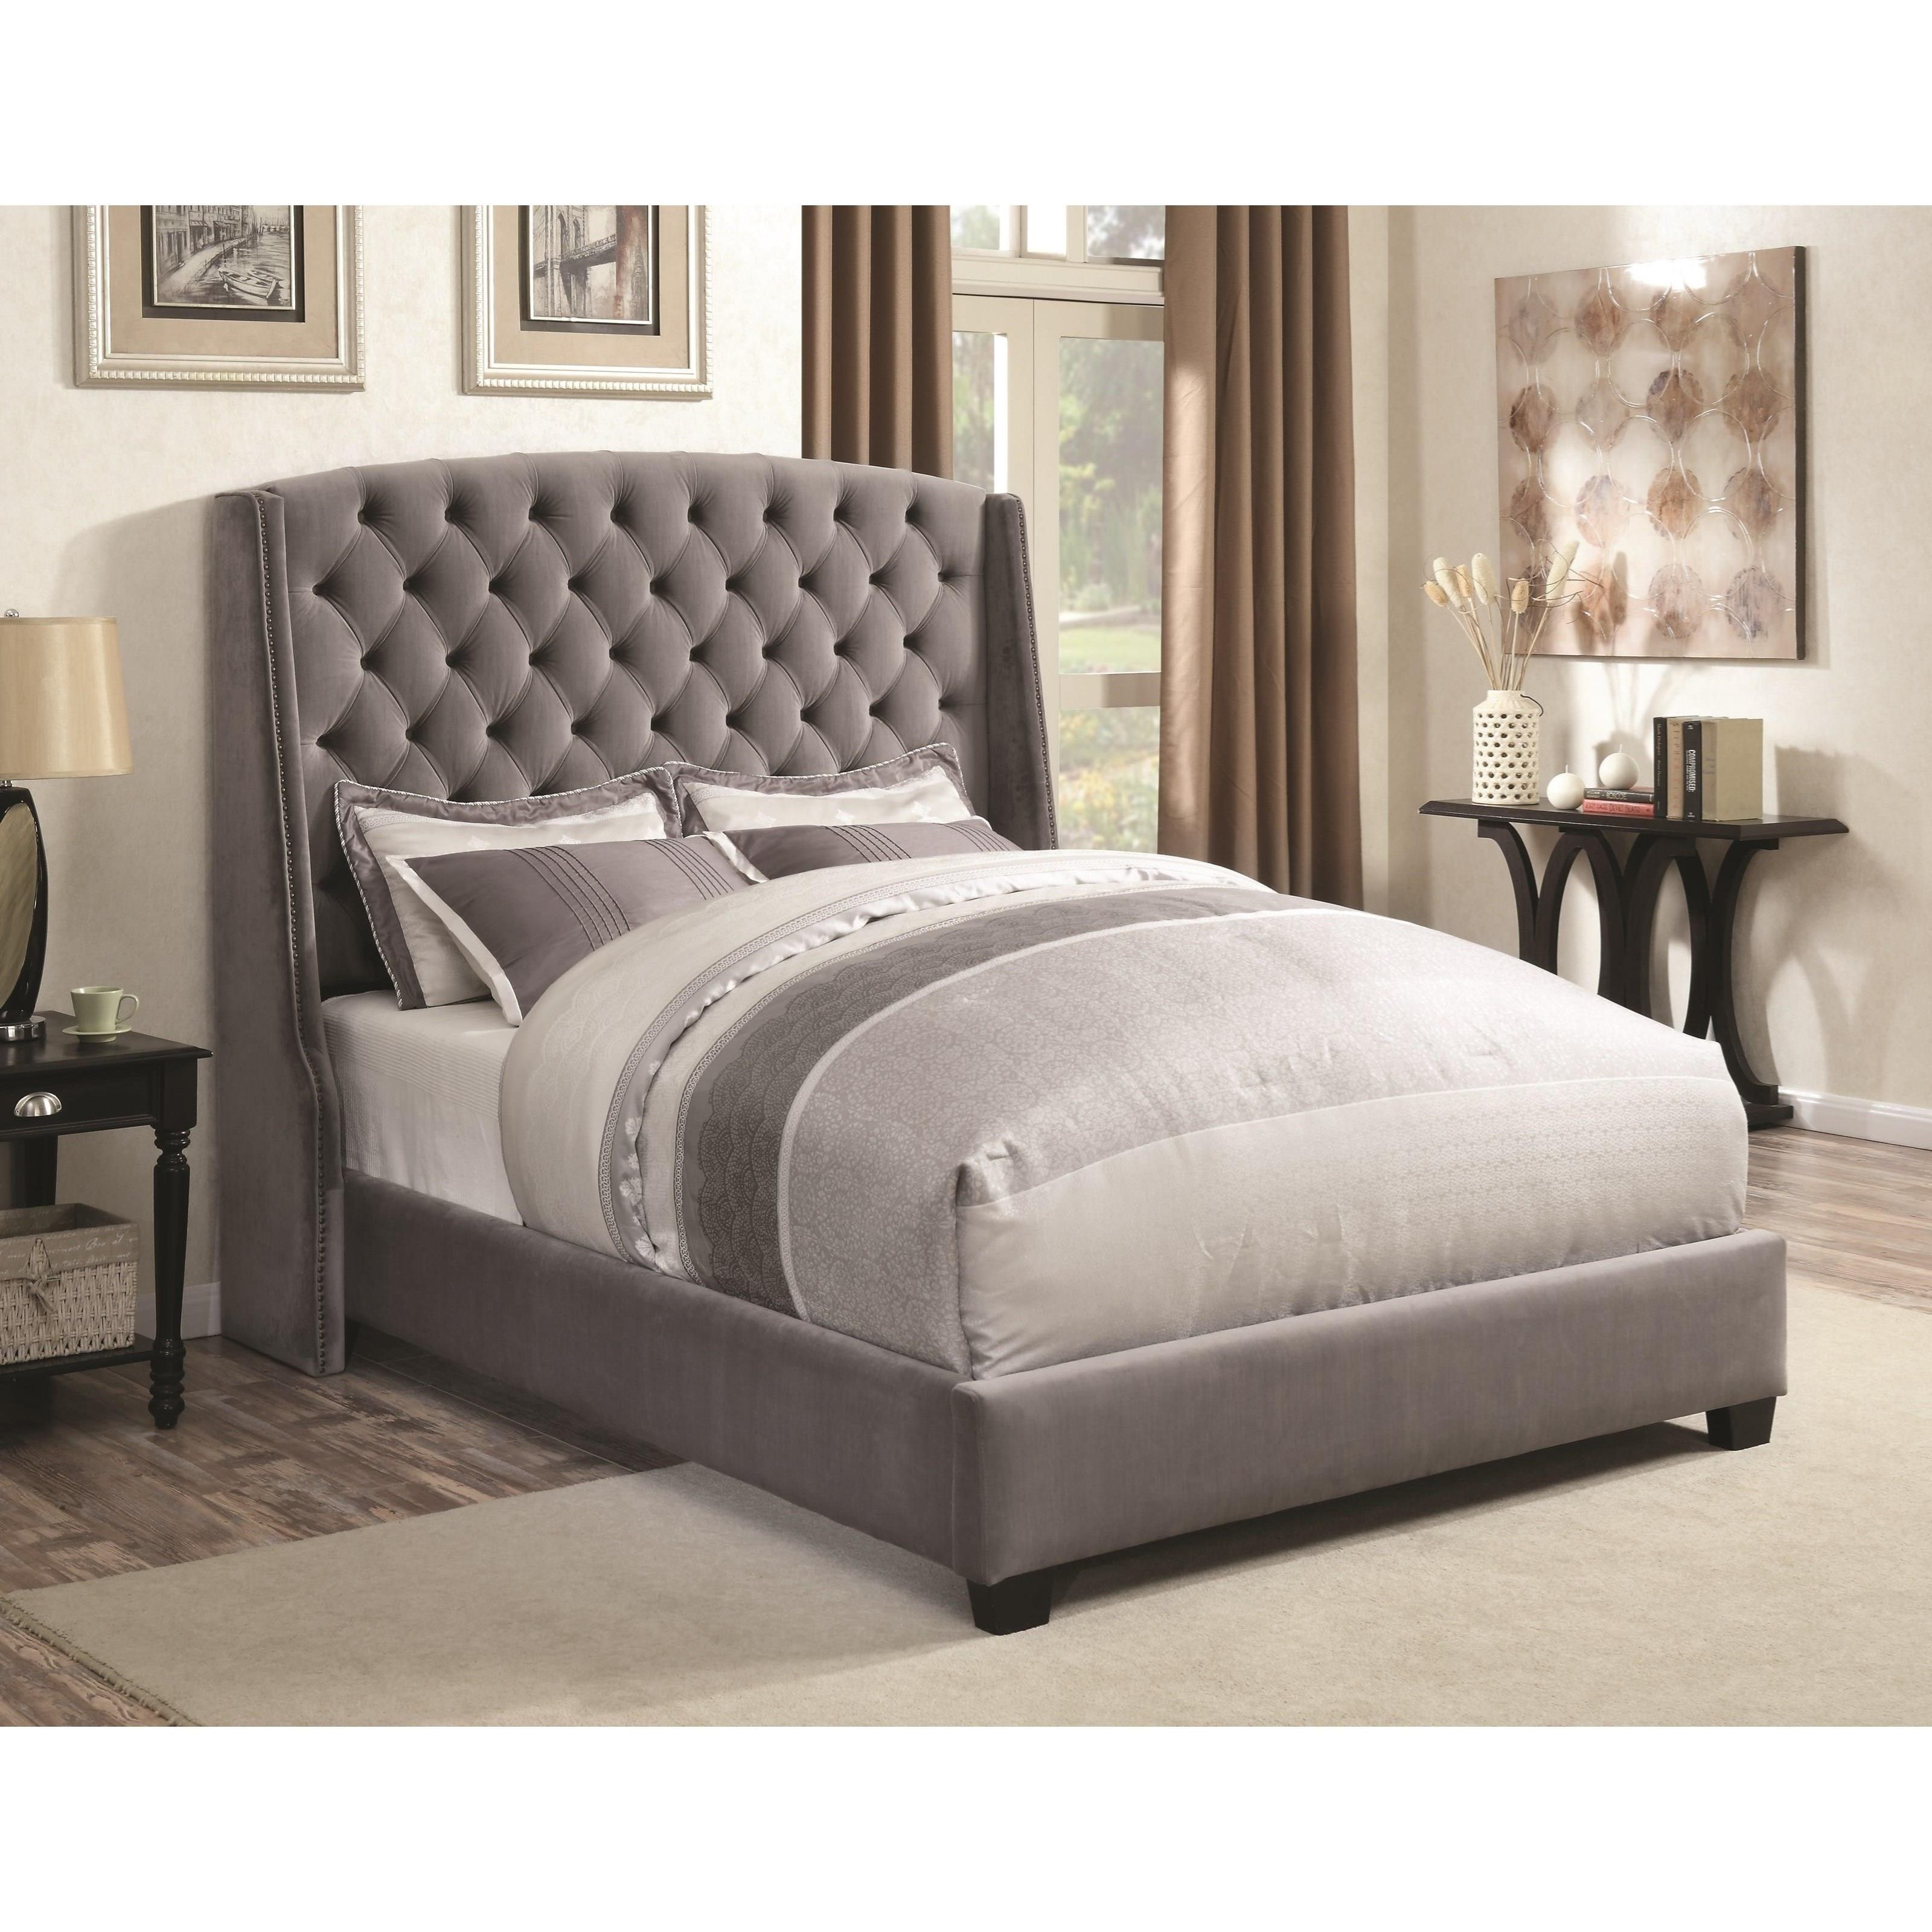 Coaster Upholstered Beds Wingback Queen Bed Fine Furniture